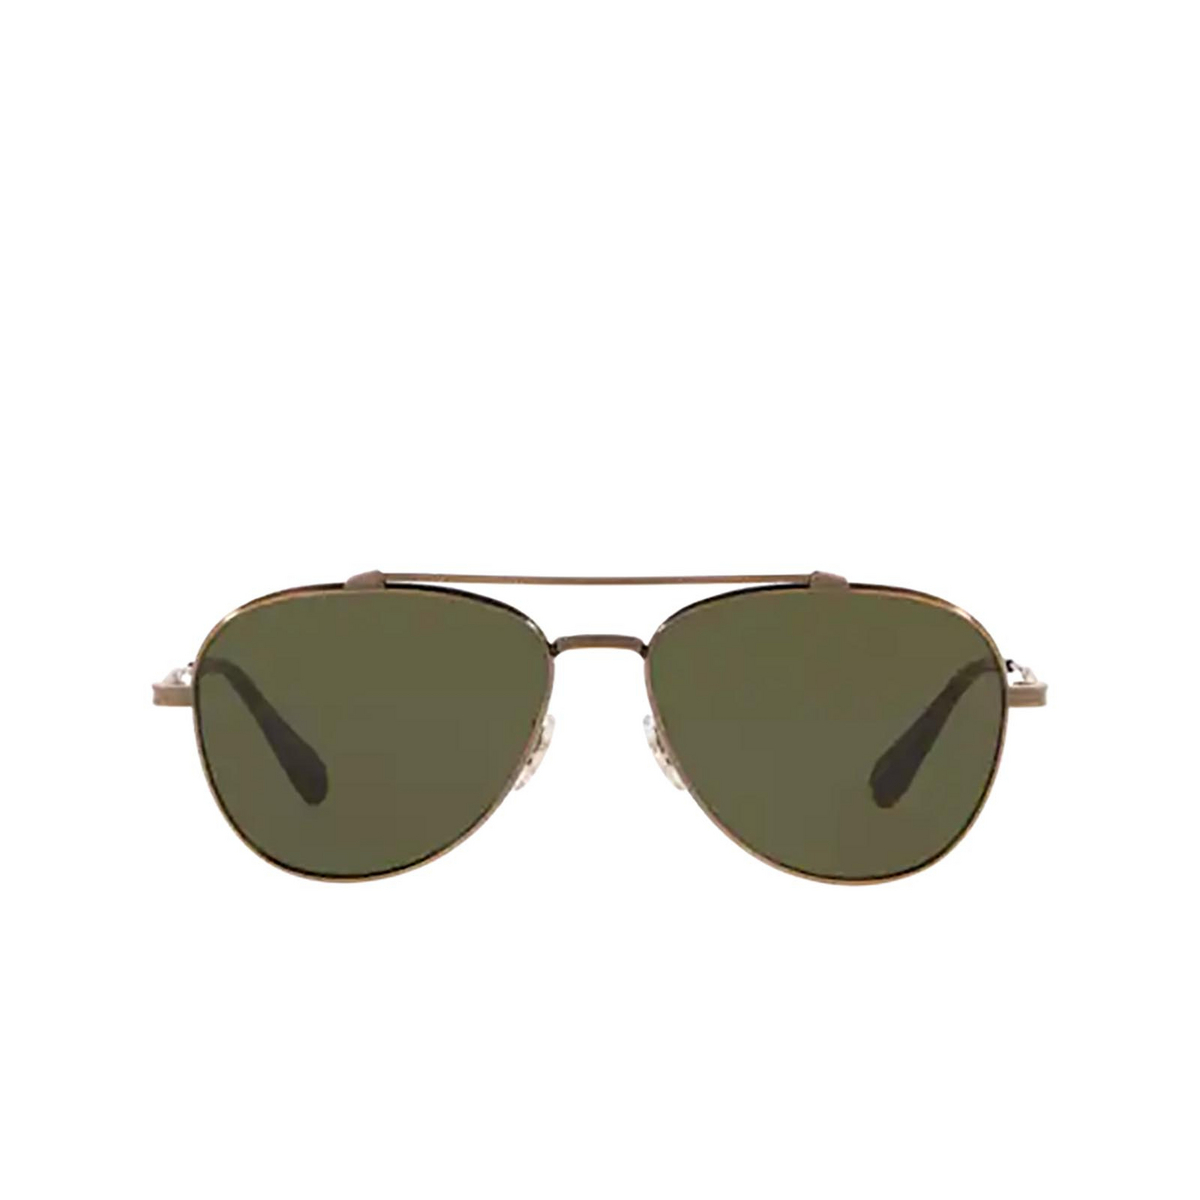 Oliver Peoples® Aviator Sunglasses: Rikson OV1266ST color Antique Gold 528471 - front view.